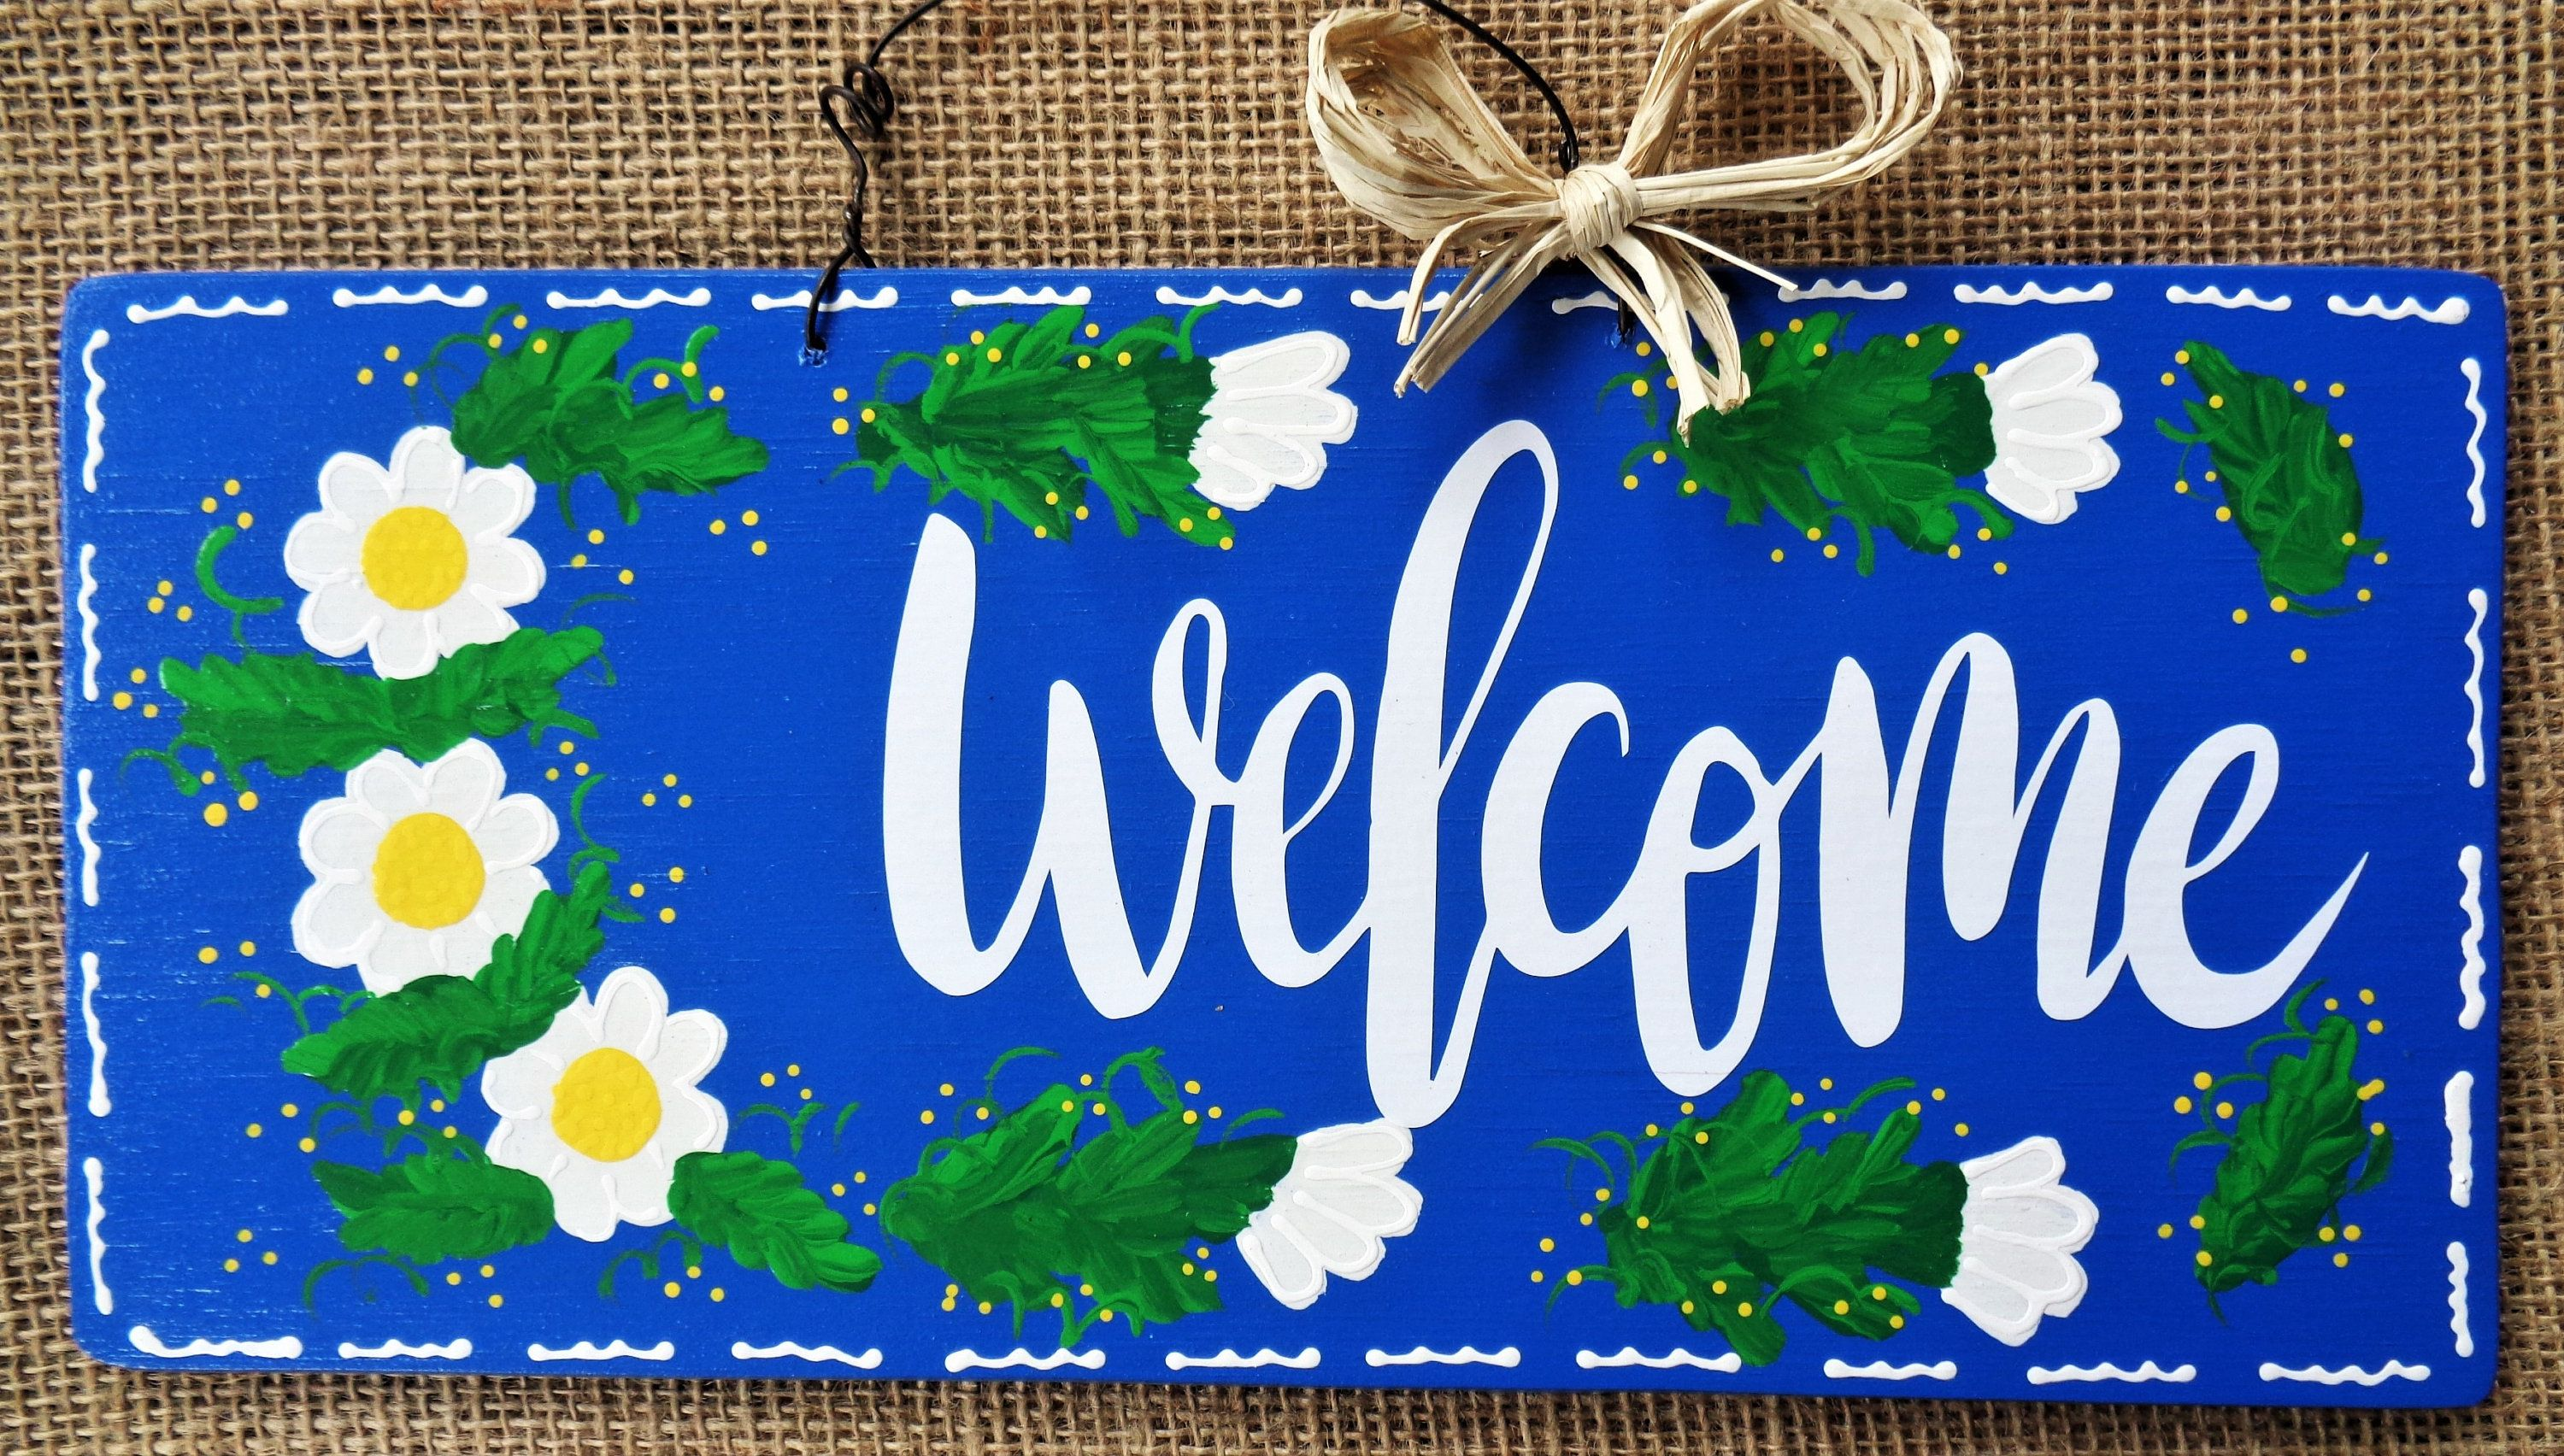 Floral Daisy Welcome Sign Wall Art Hanger Plaque Country Wood Etsy In 2020 Hand Painted Decor Country Wood Crafts Art Hanger